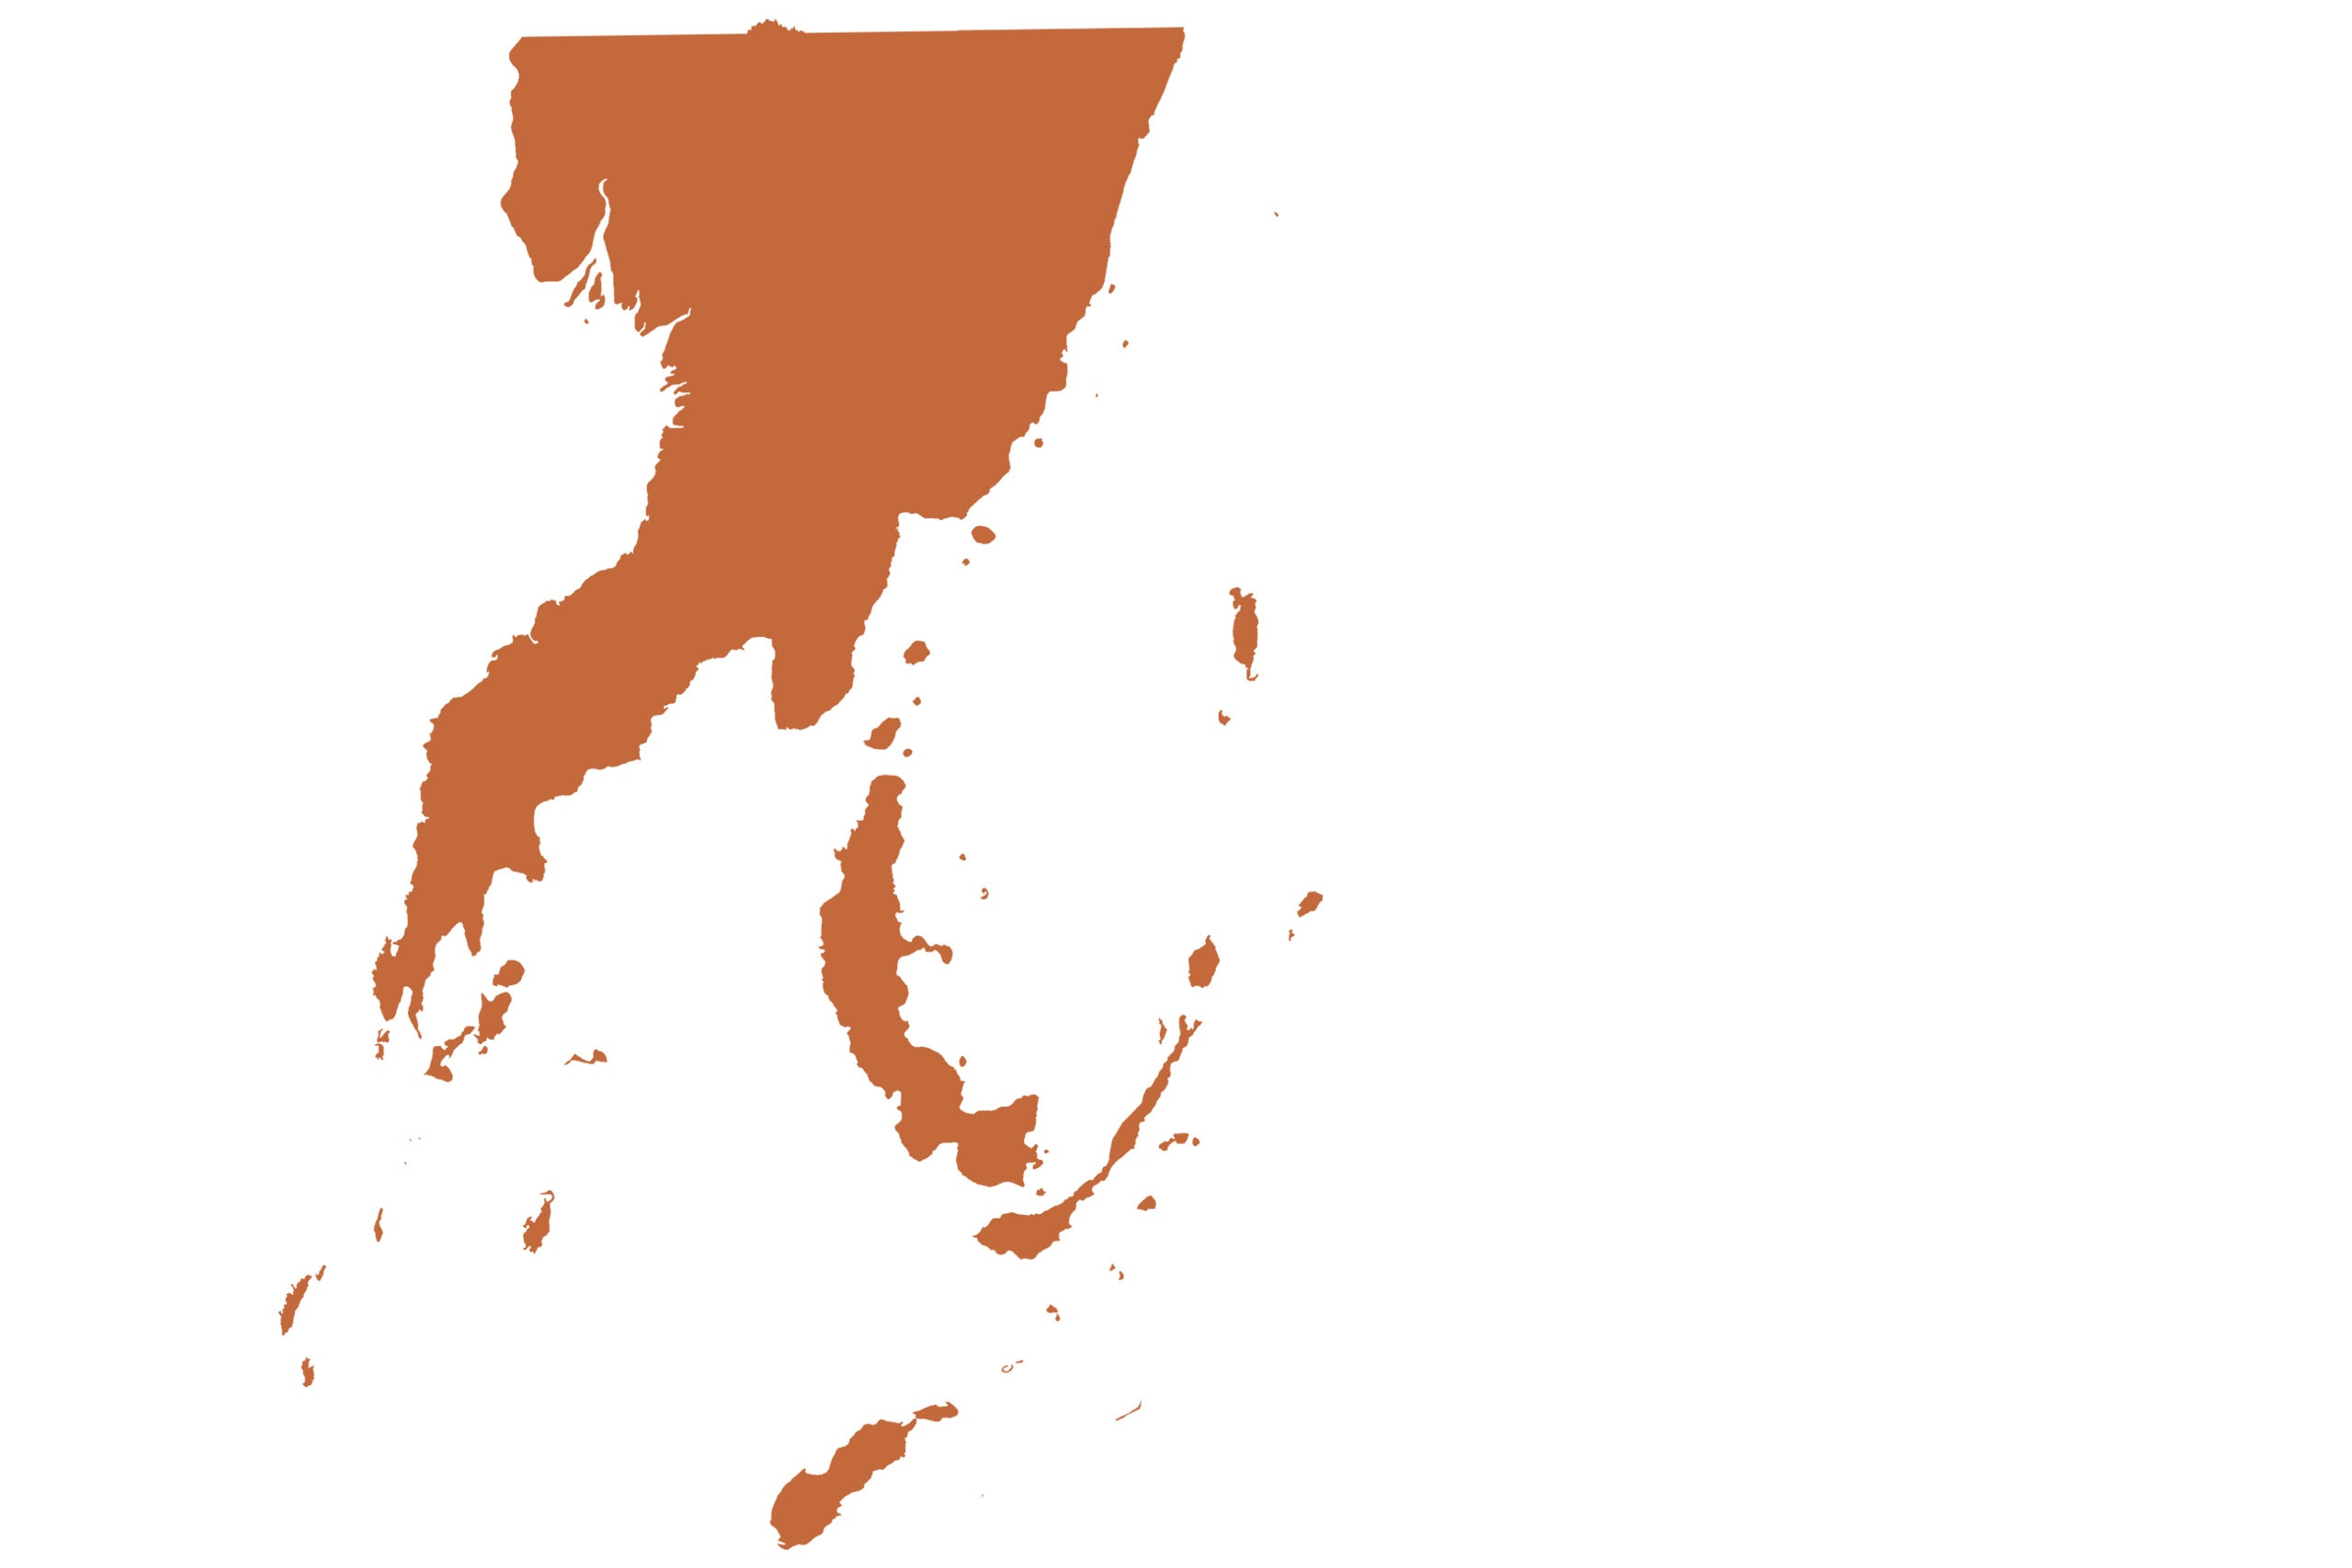 Papua New Guinea map in orange from list of missing countries for 1 Earth City Portrait Photography Project aka NYChildren by Danny Goldfield.